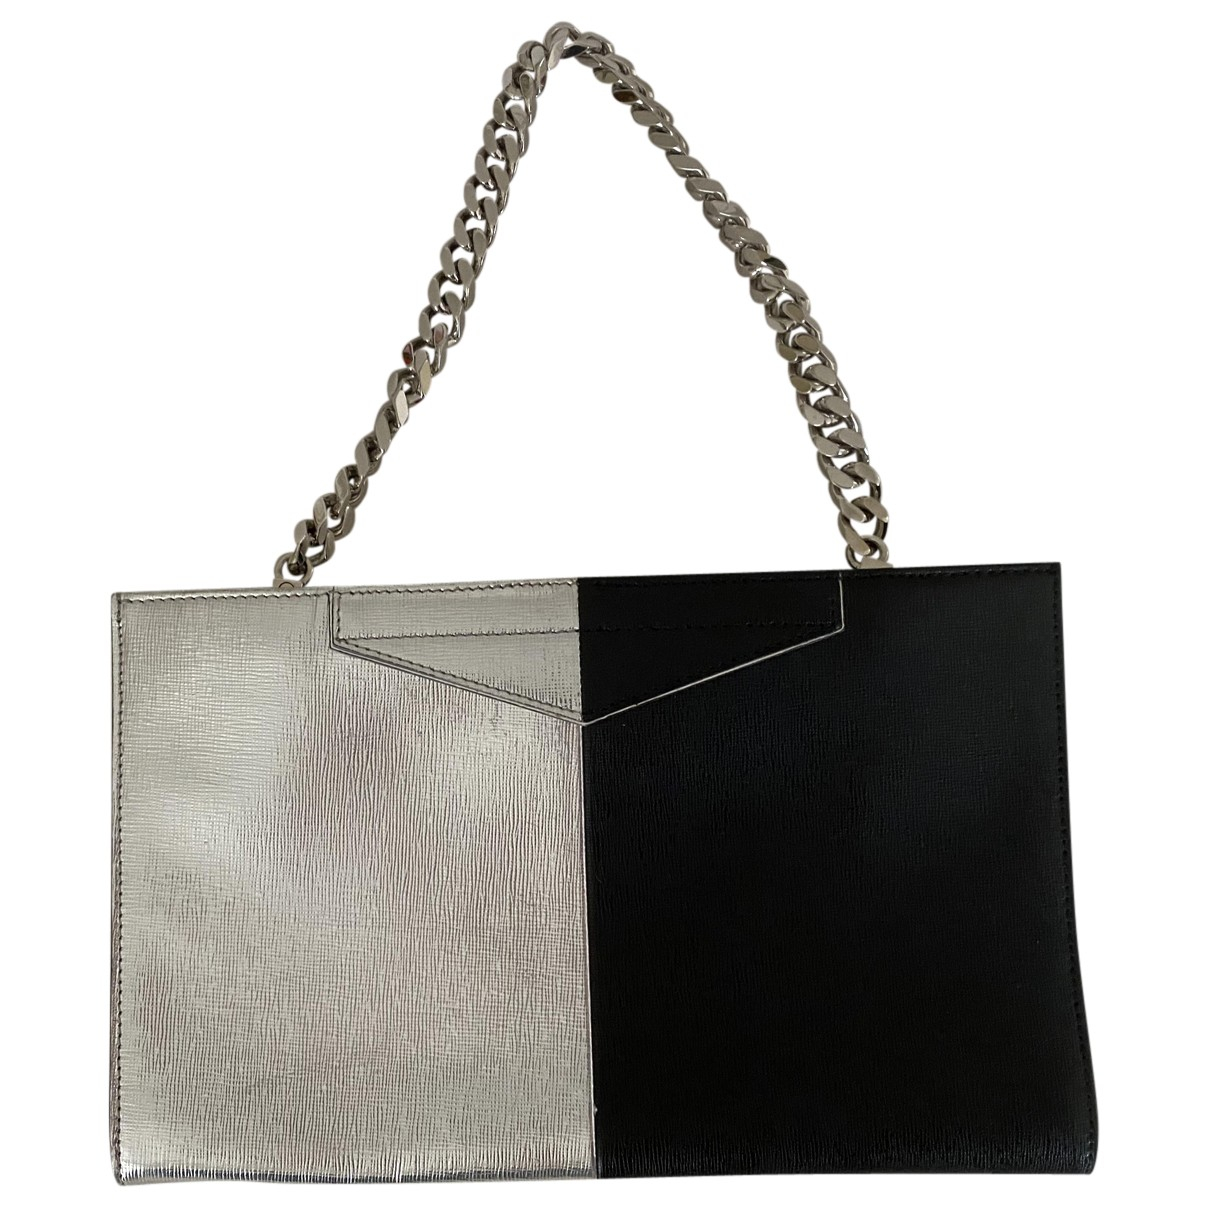 Fendi \N Clutch in  Silber Leder